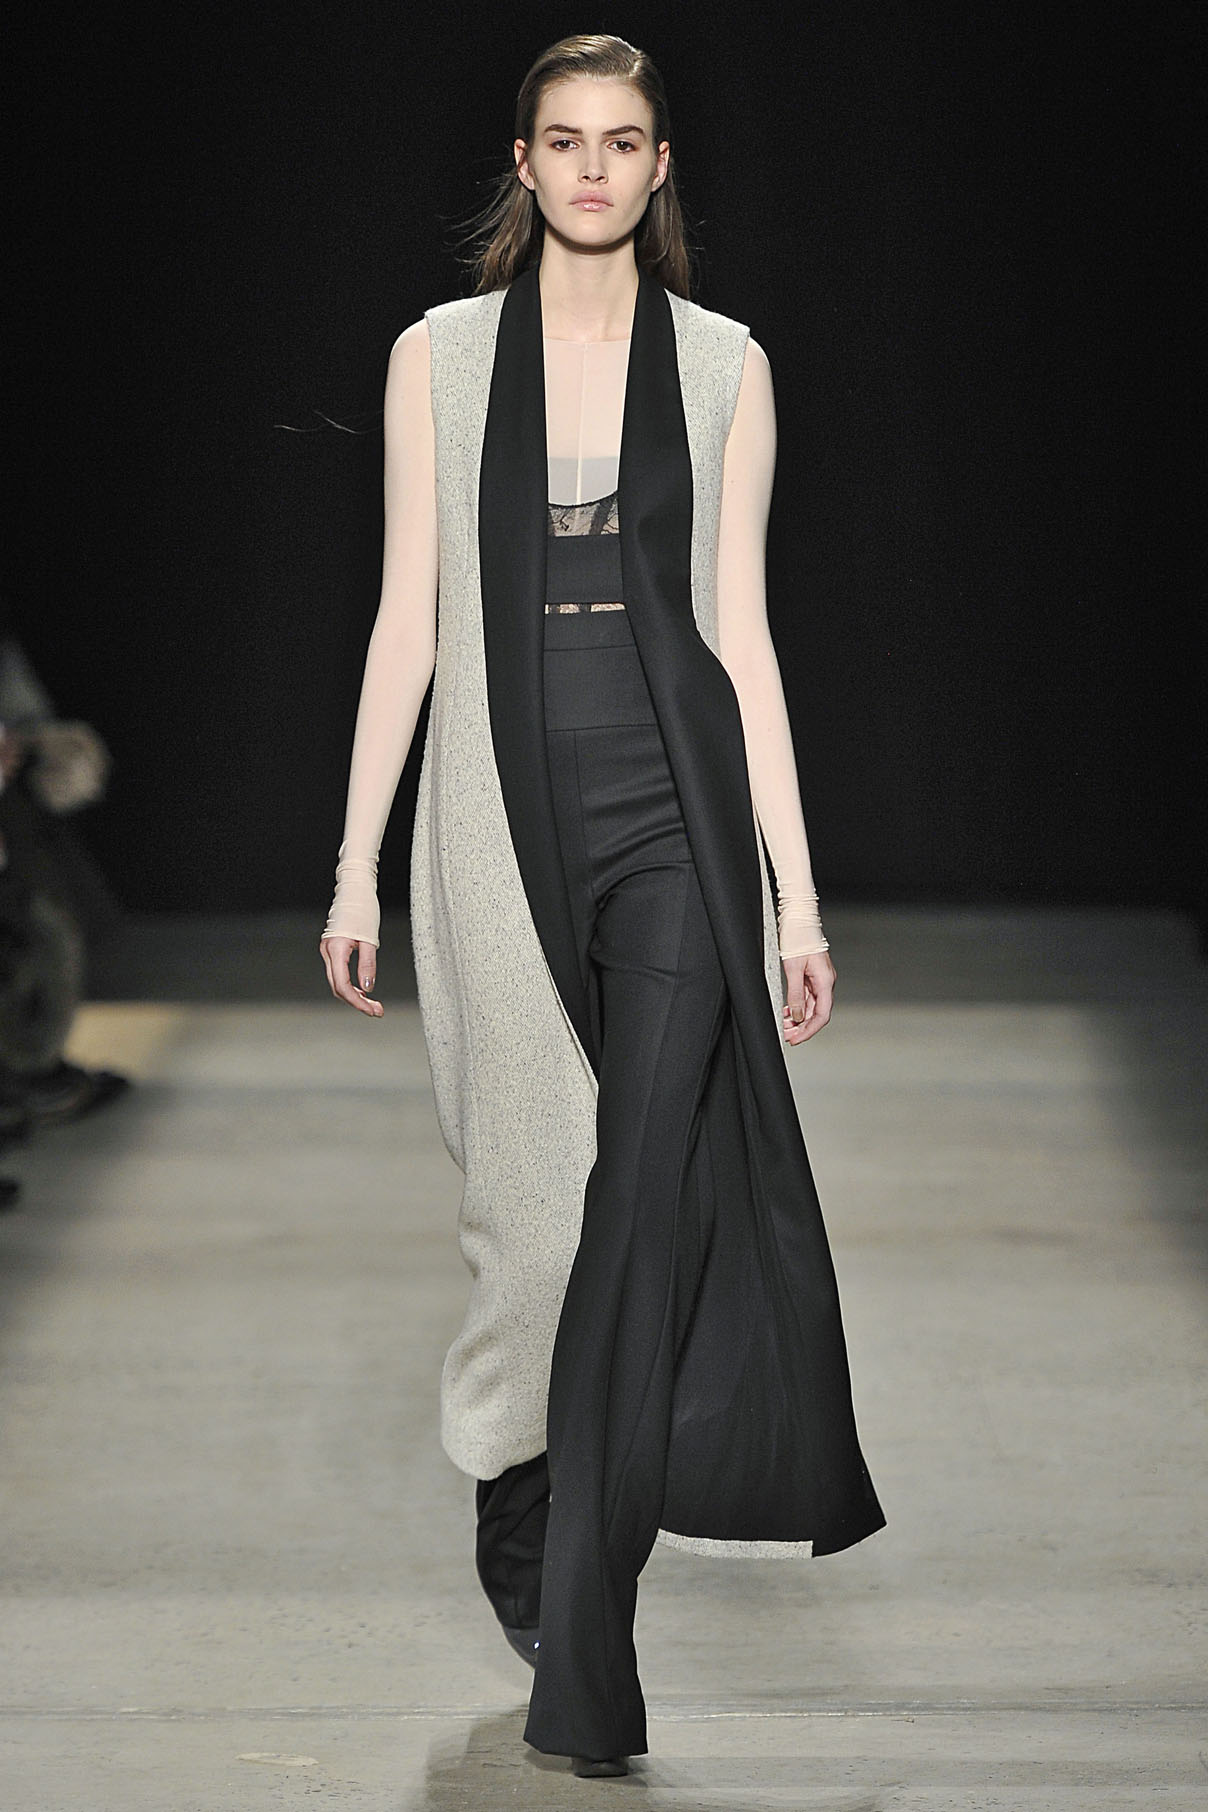 Look 24 Silver tweed/black wool sleeveless coat over nude sheer jersey top with black lace bodysuit and  black wool pant.